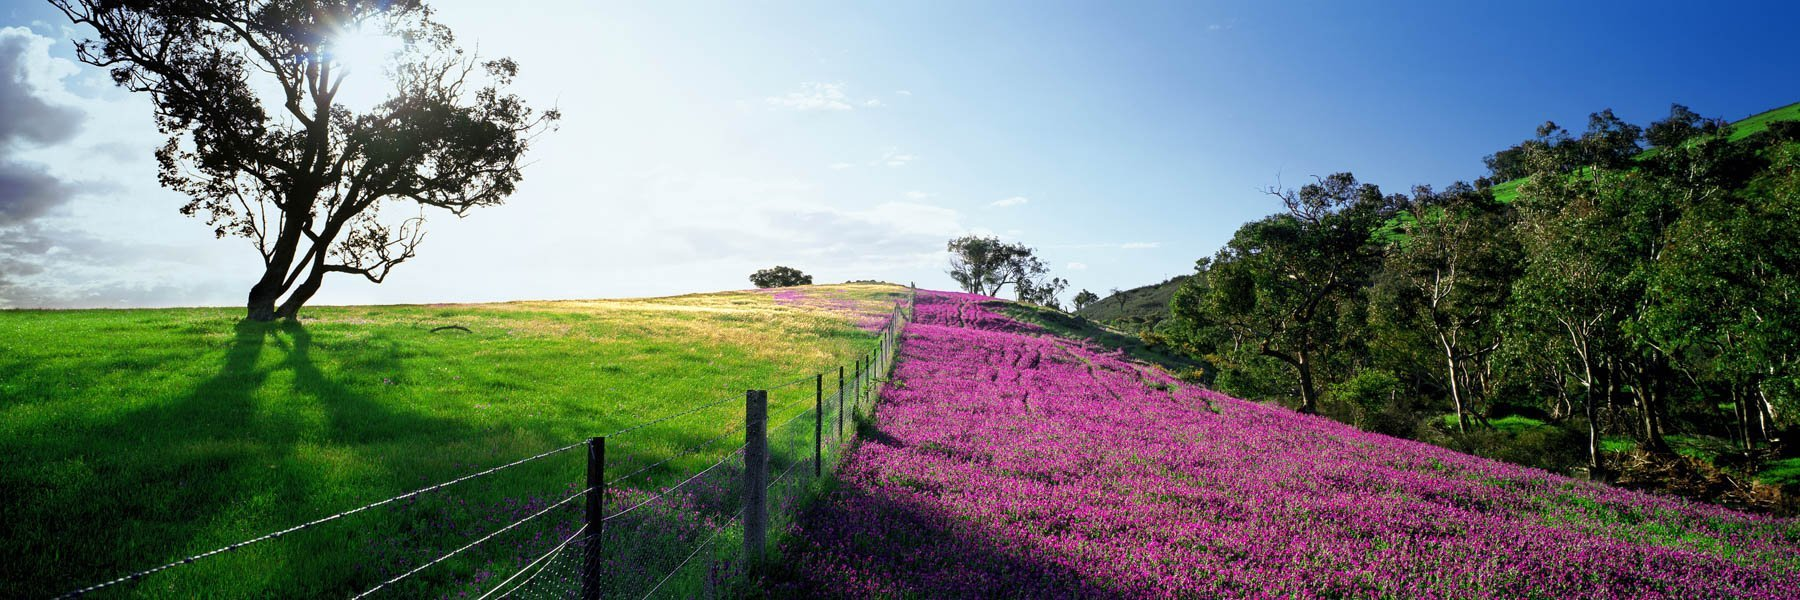 A wire fence separating a field of wildflowers from green pasture on a farm, NSW, Australia.